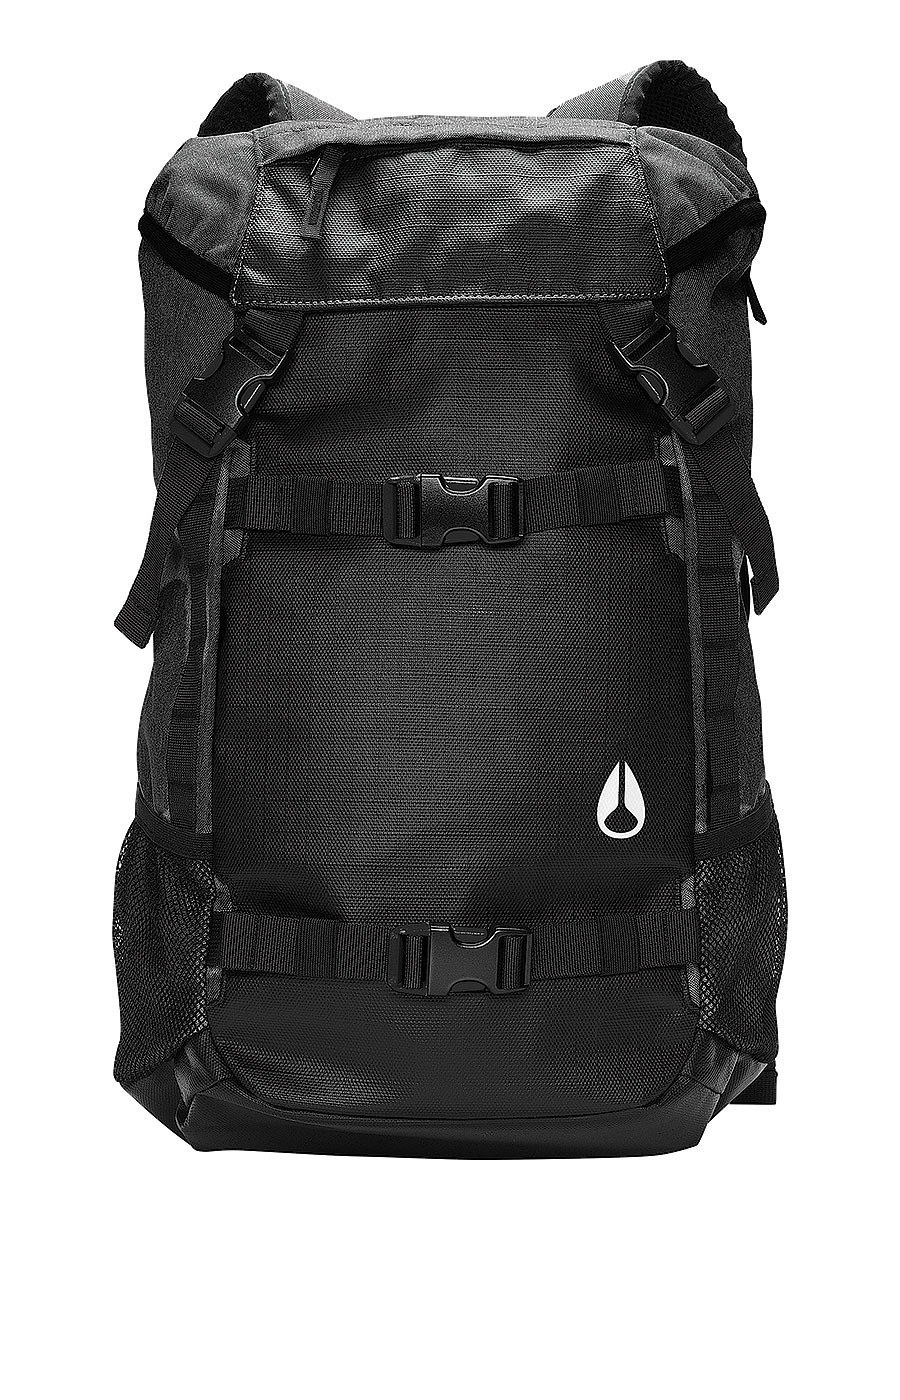 LANDLOCK BACKPACK II